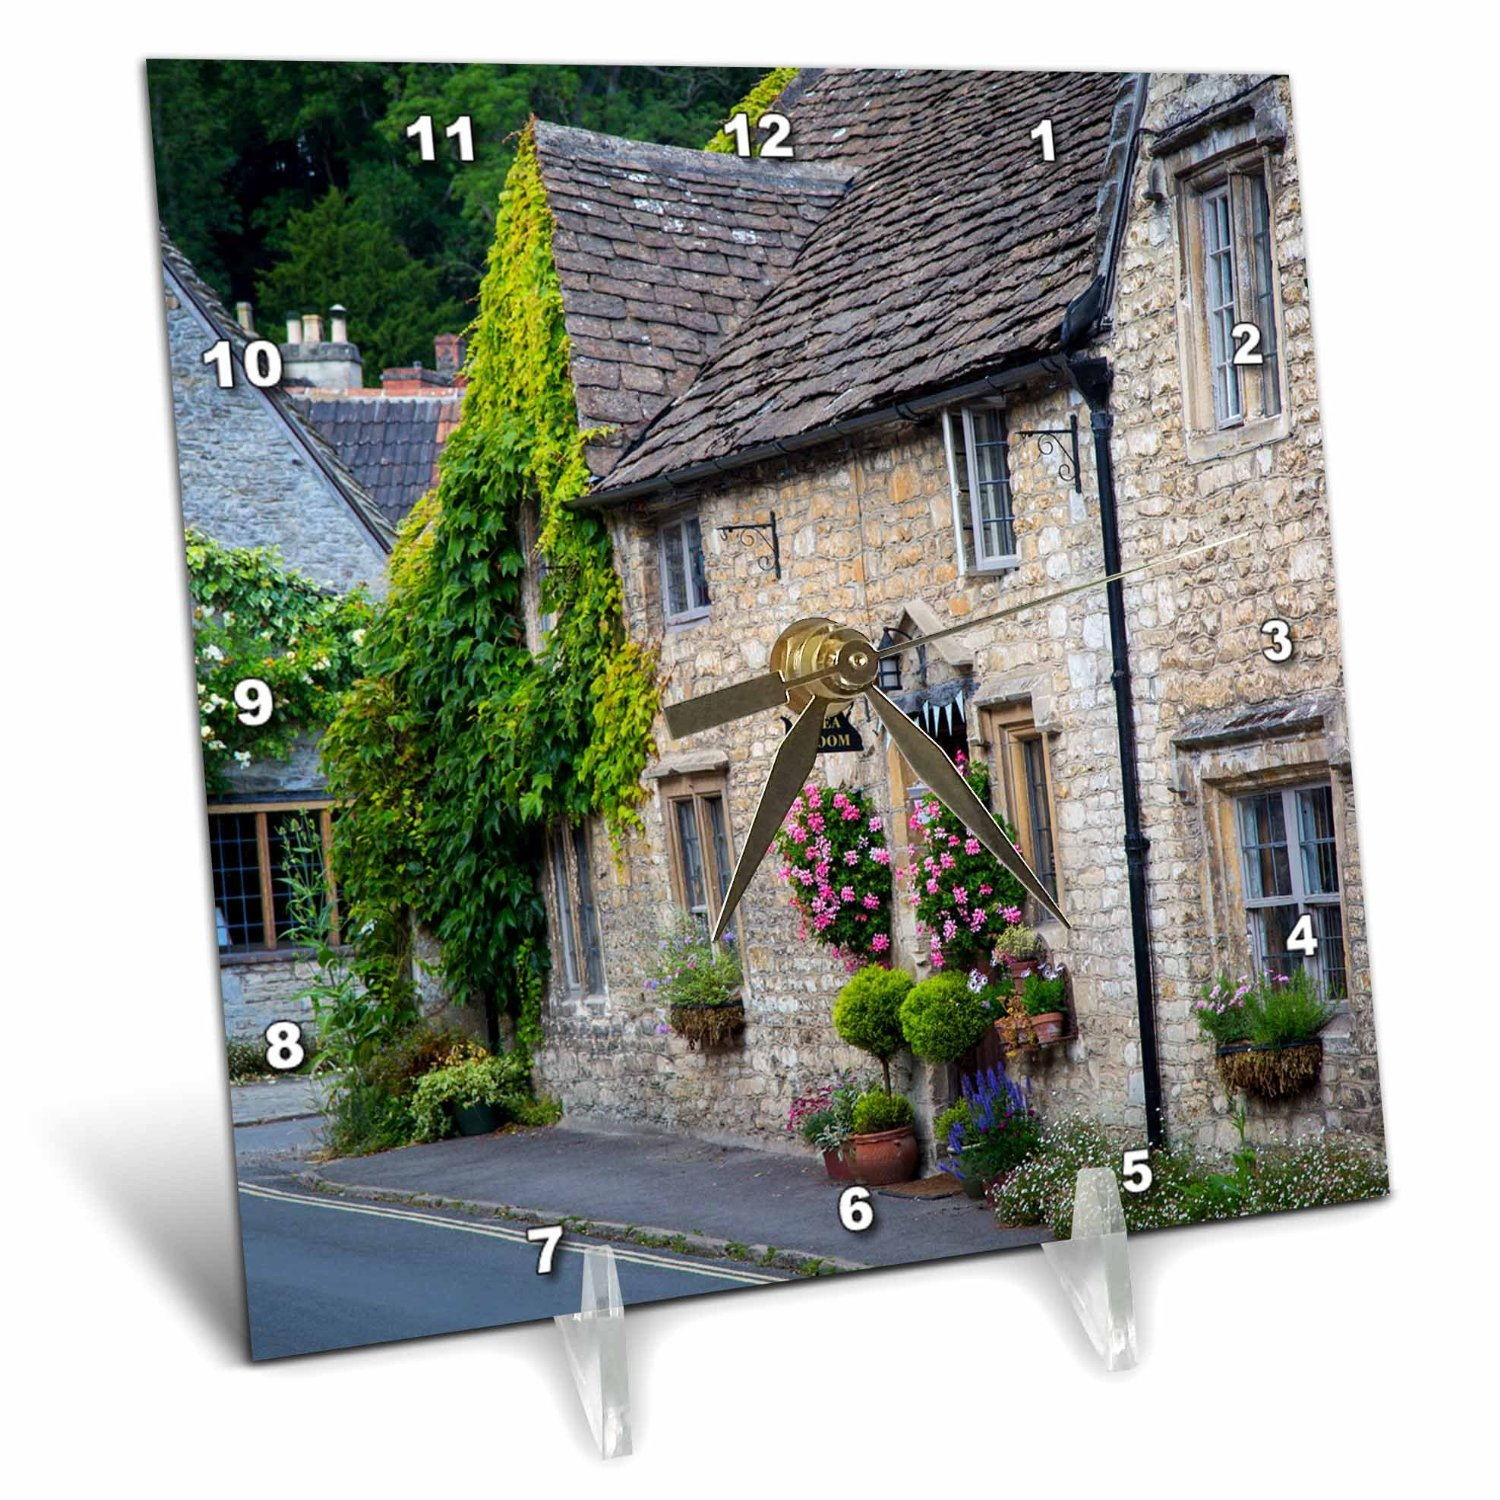 Danita Delimont - Houses - High Street, Castle Combe, the Cotswolds, Wiltshire, England - 6x6 Desk Clock (dc_228052_1)